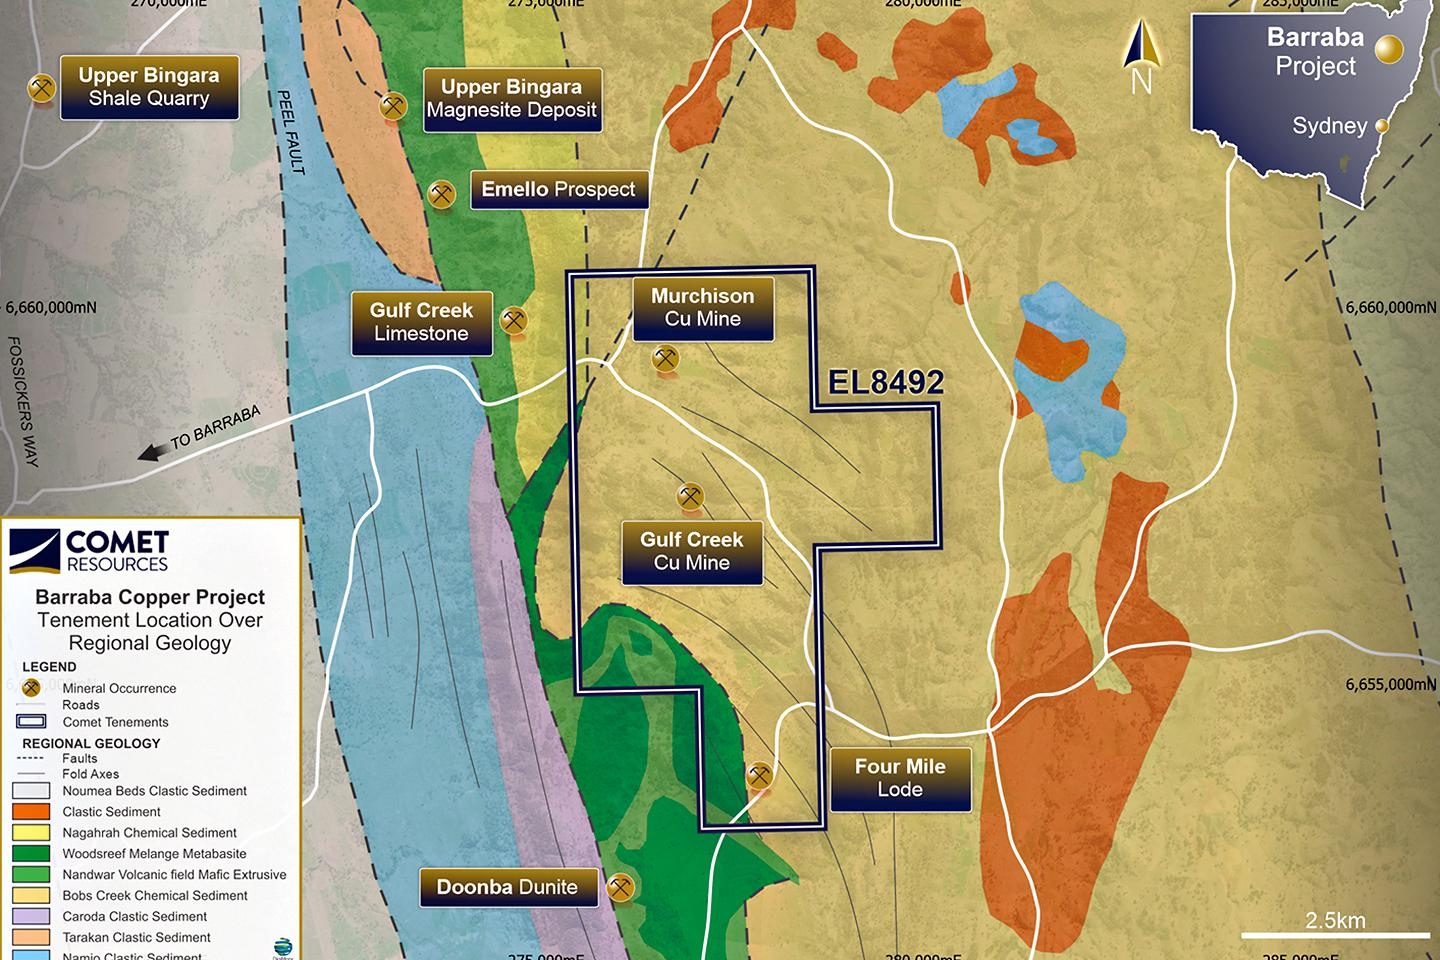 Comet secures access to Barraba copper project